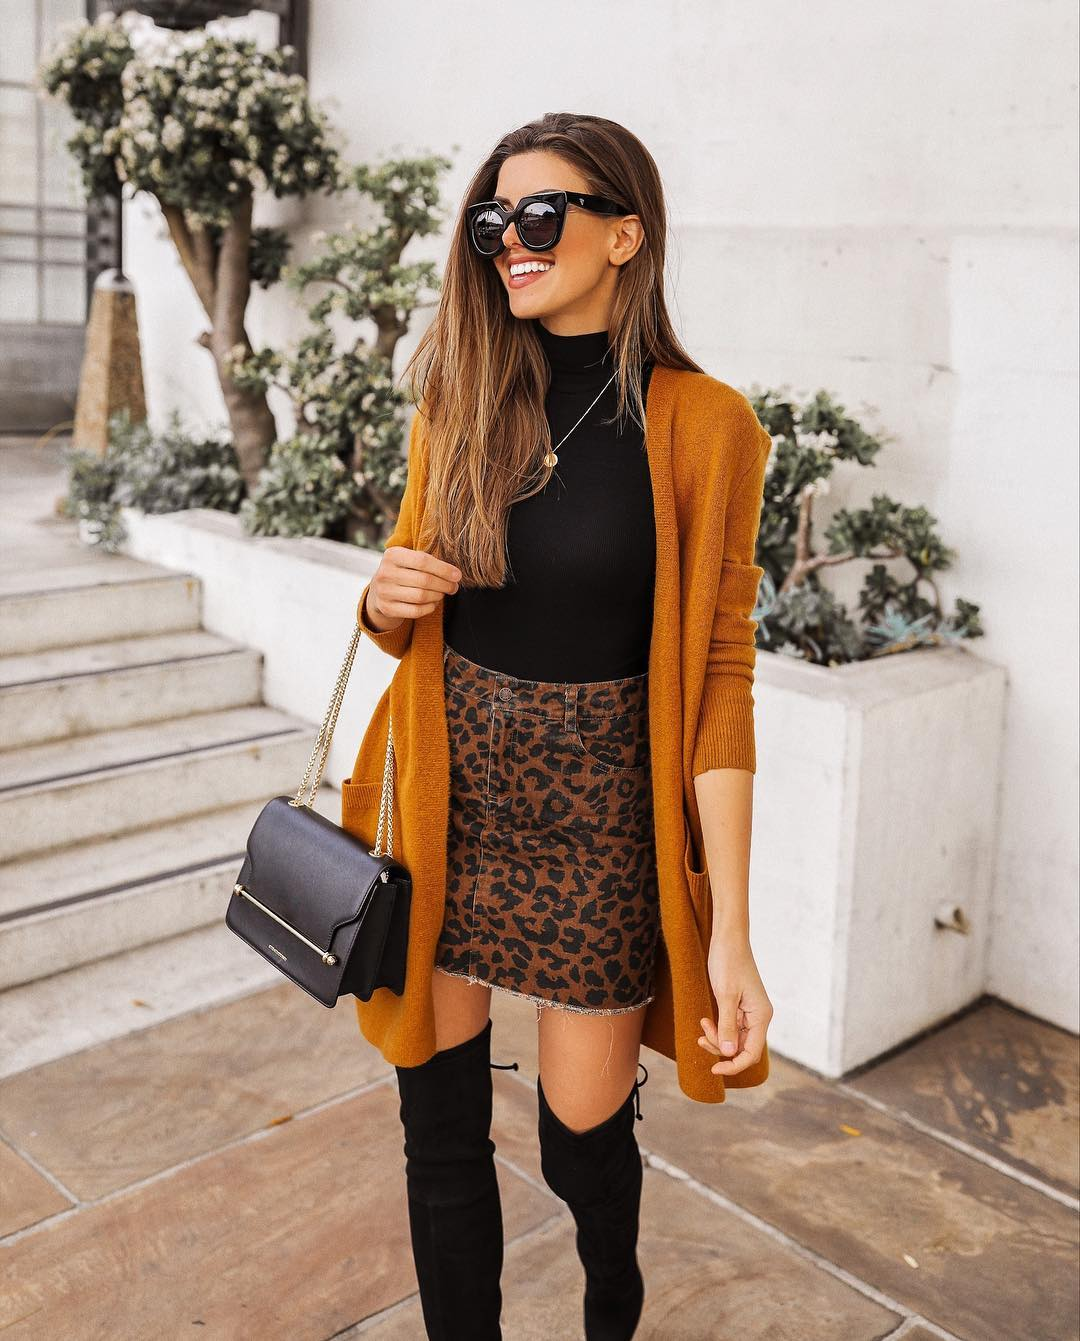 Leopard Print Skirt And Mustard Cardigan   Outfit